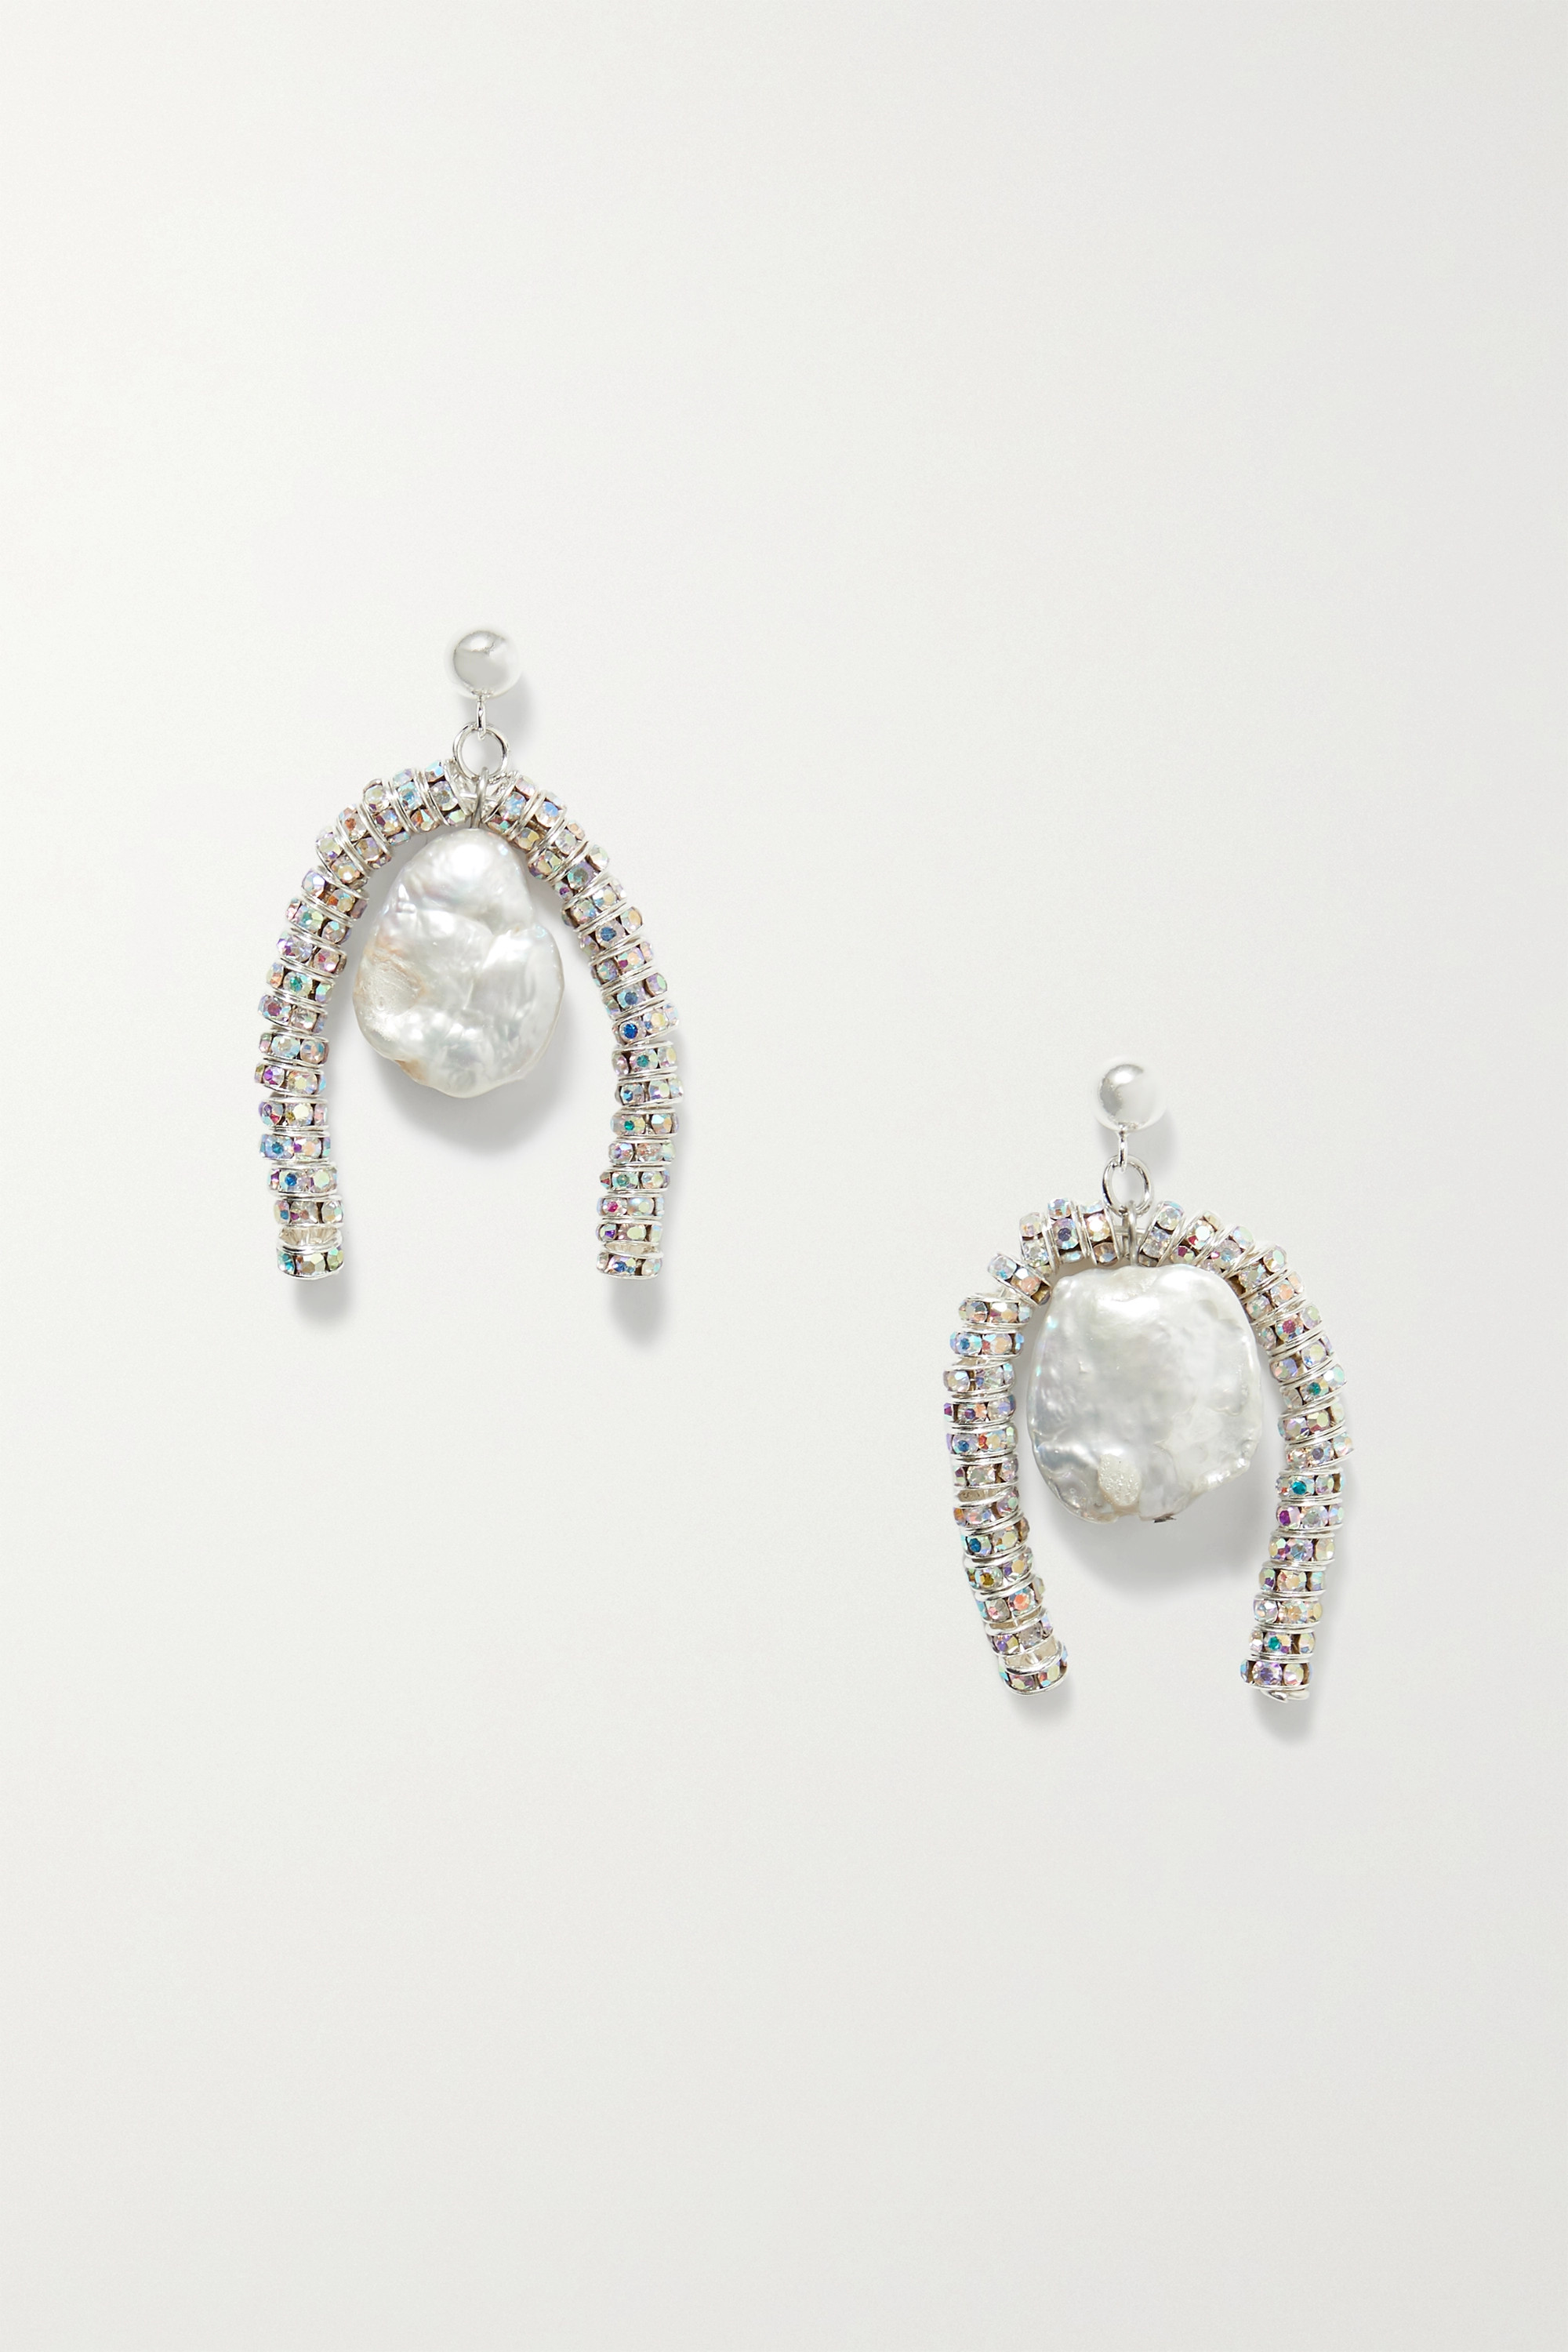 PEARL OCTOPUSS.Y Baroque Paris silver-plated, crystal and pearl earrings